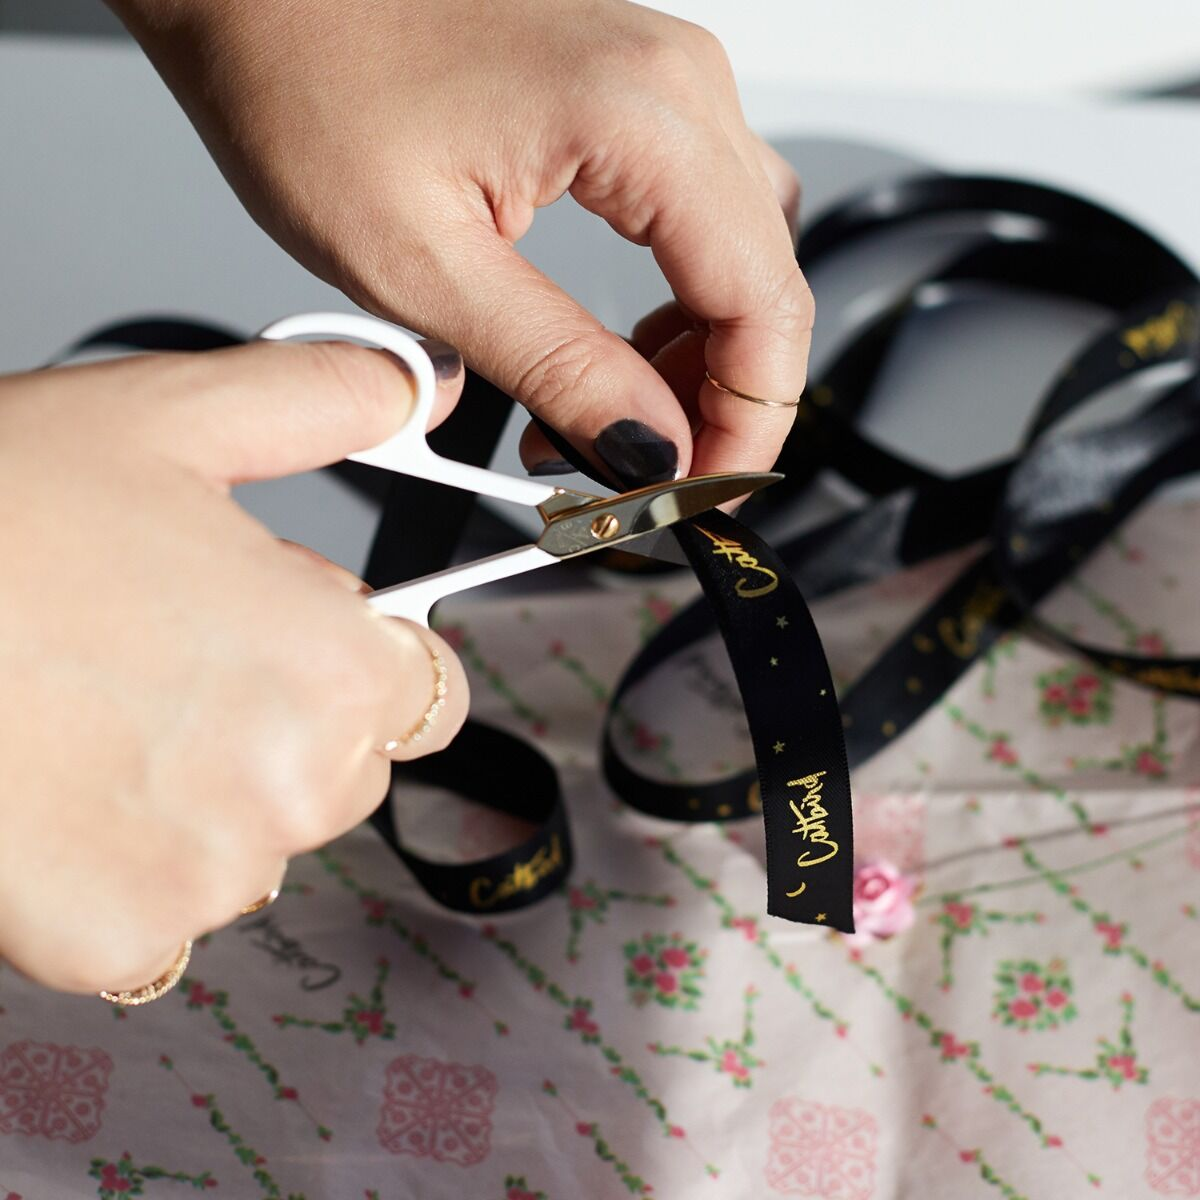 French Nail Scissors image